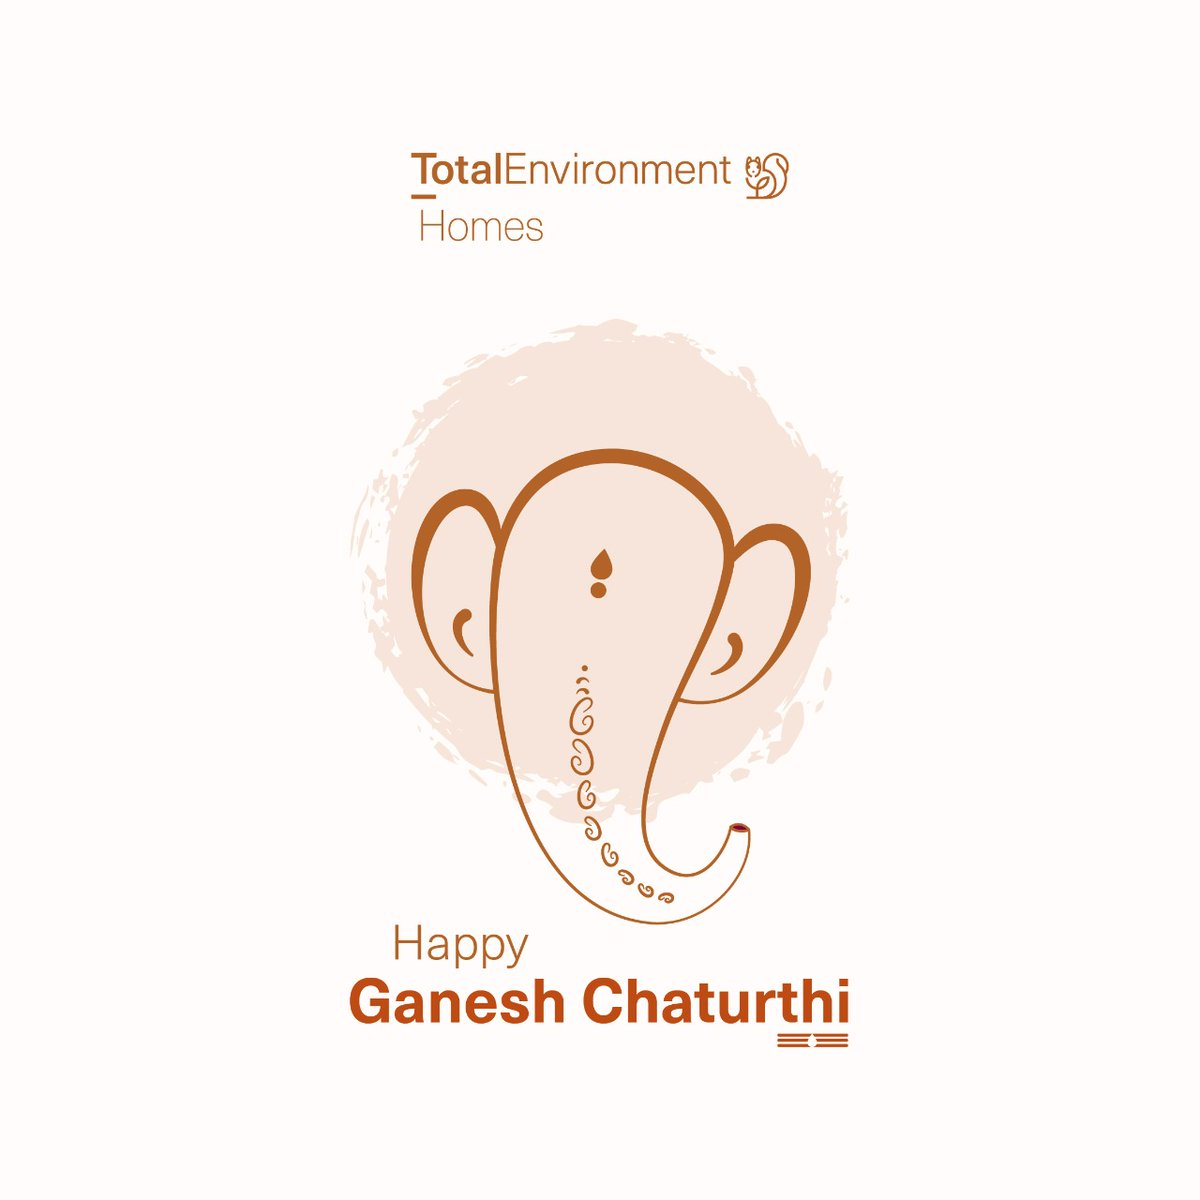 Lord #Ganesha of house Shiva, first of his name, son of Parvati, the remover of obstacles, the lord of new beginnings, the giver of intellect and wisdom, rider of mice, here comes the elephant God!  A Happy #GaneshChaturthi  #ganpati #bappa #ganpatibappamorya #totalenvironment https://t.co/Utk8fFFjzF